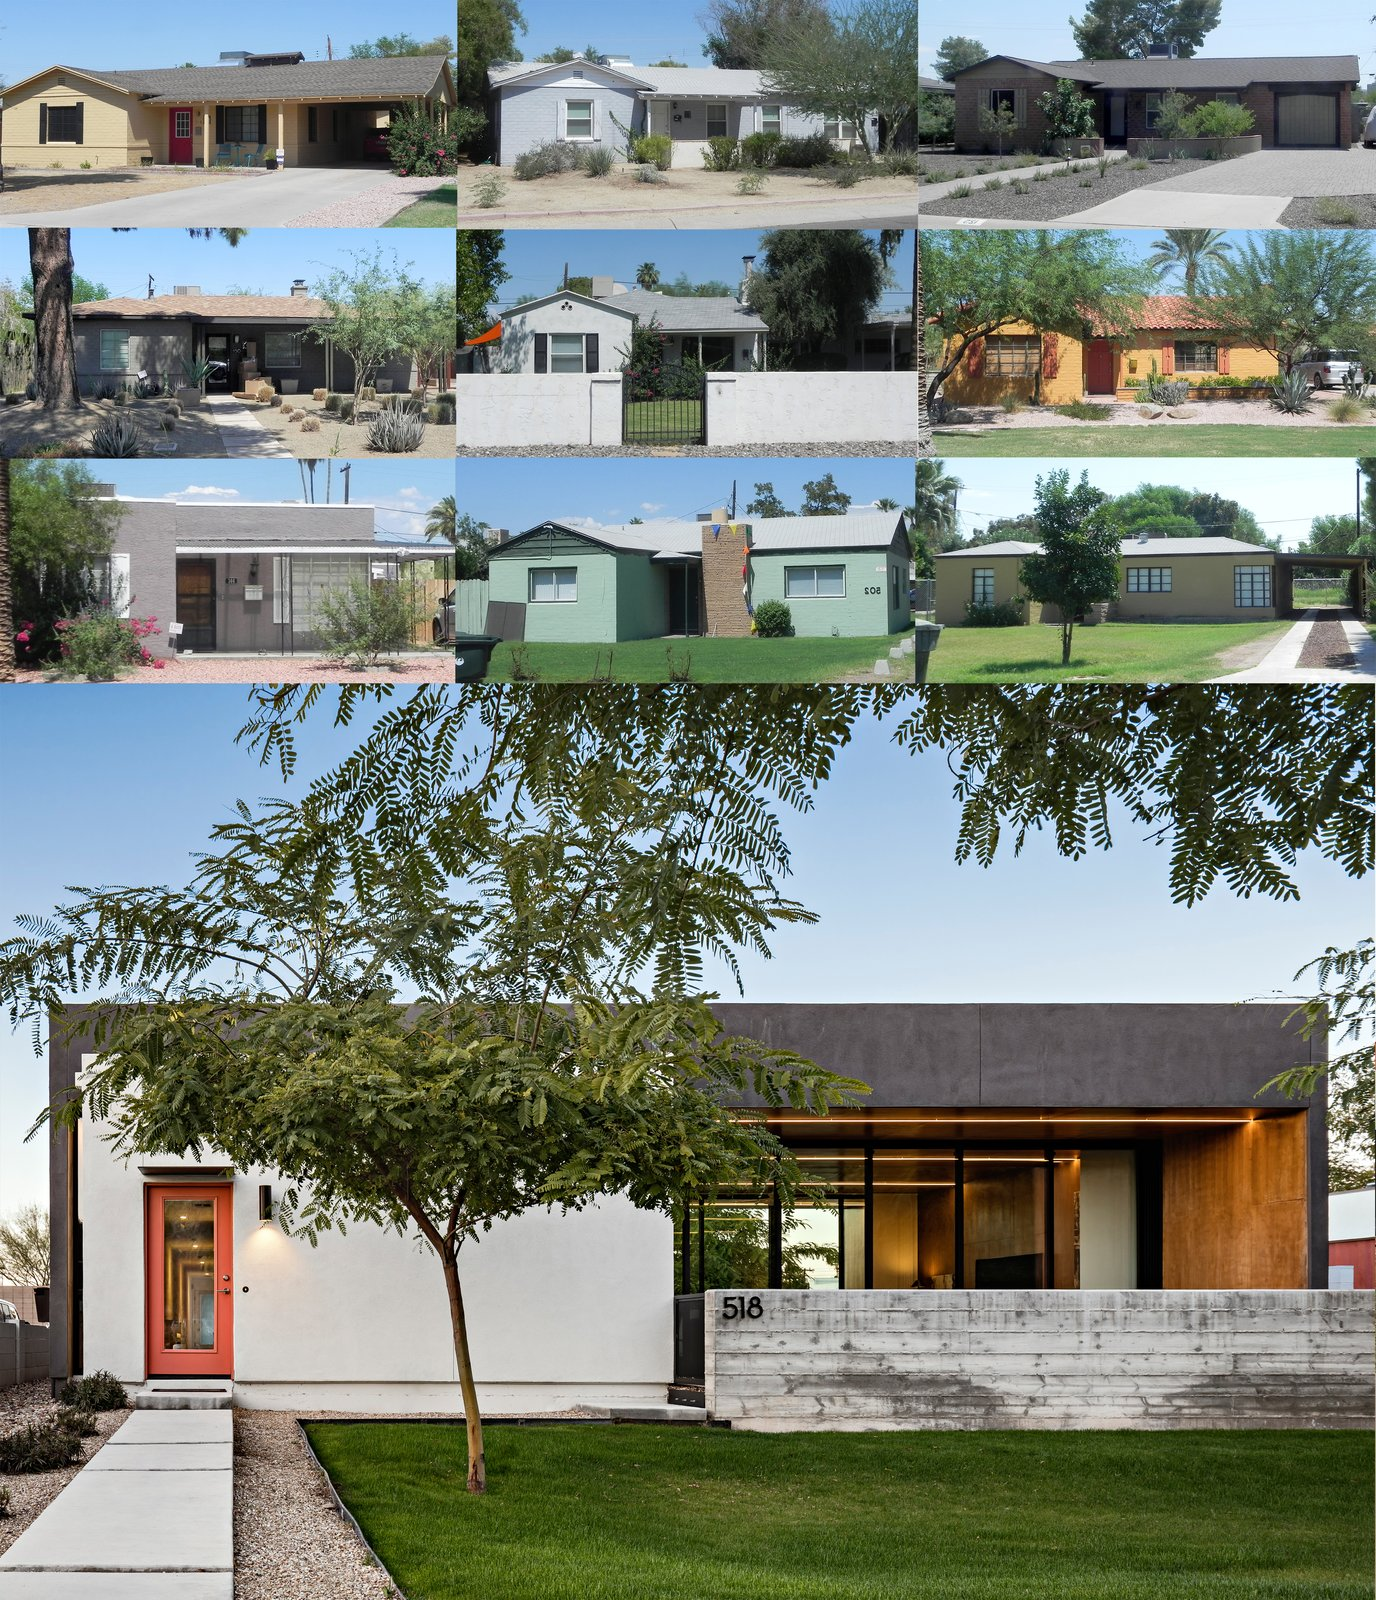 Outdoor Compilation of the front elevations of the historic homes in the neighborhood and the resulting modern elevation of 'Link'  Link House by The Ranch Mine